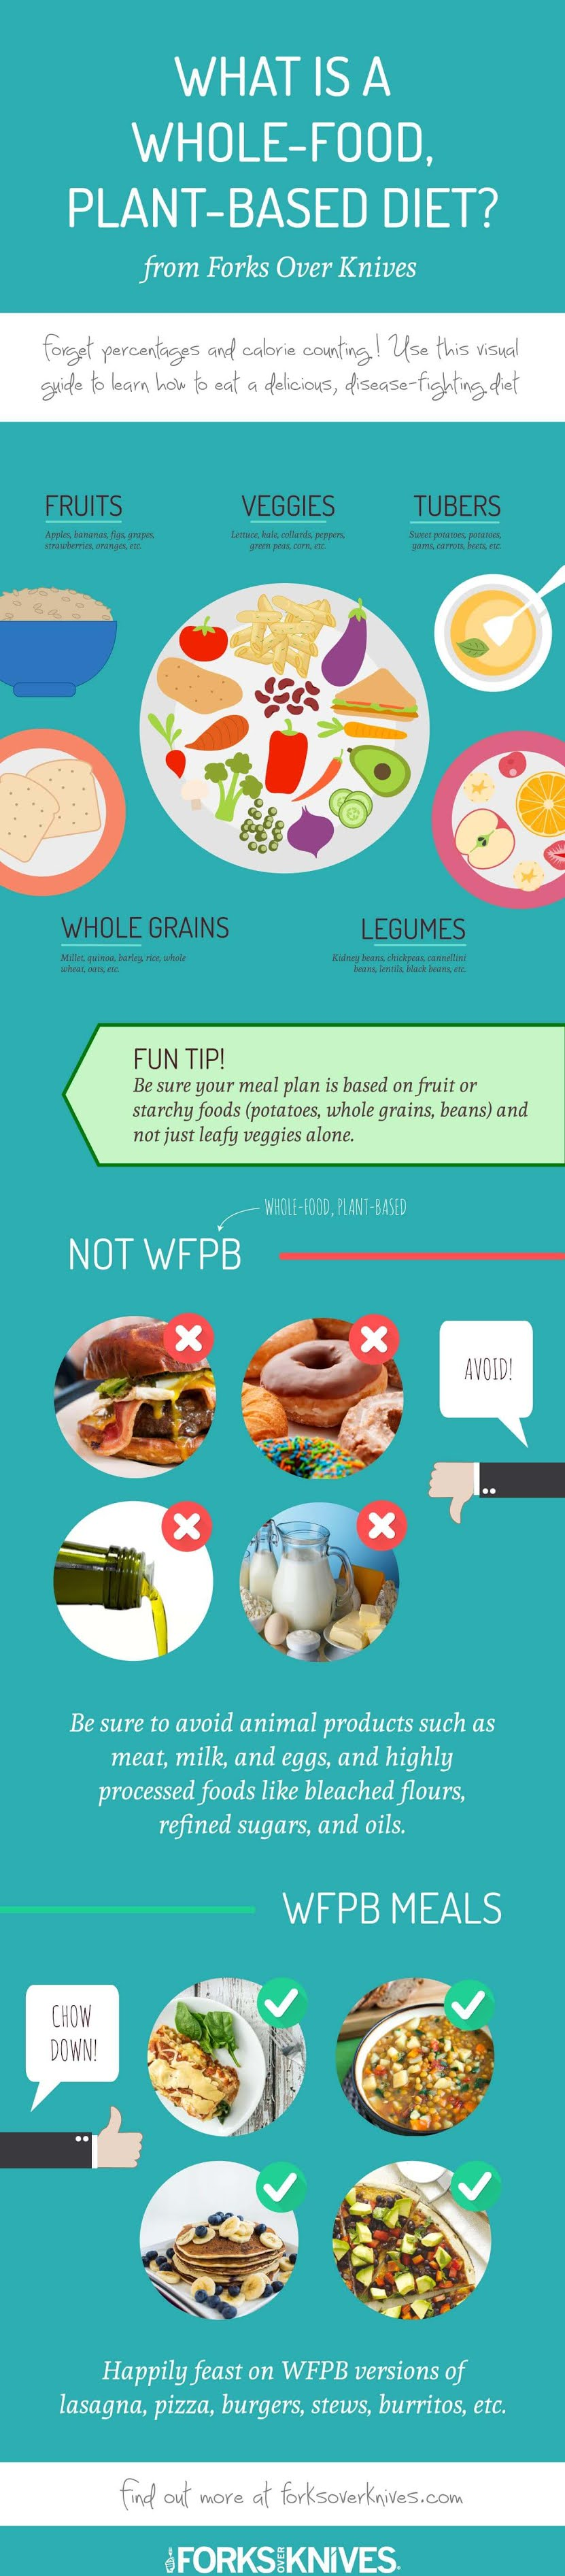 What Is A Whole-food, Plant-based Diet? #infographic #Food #infographics #Diet #Infographic